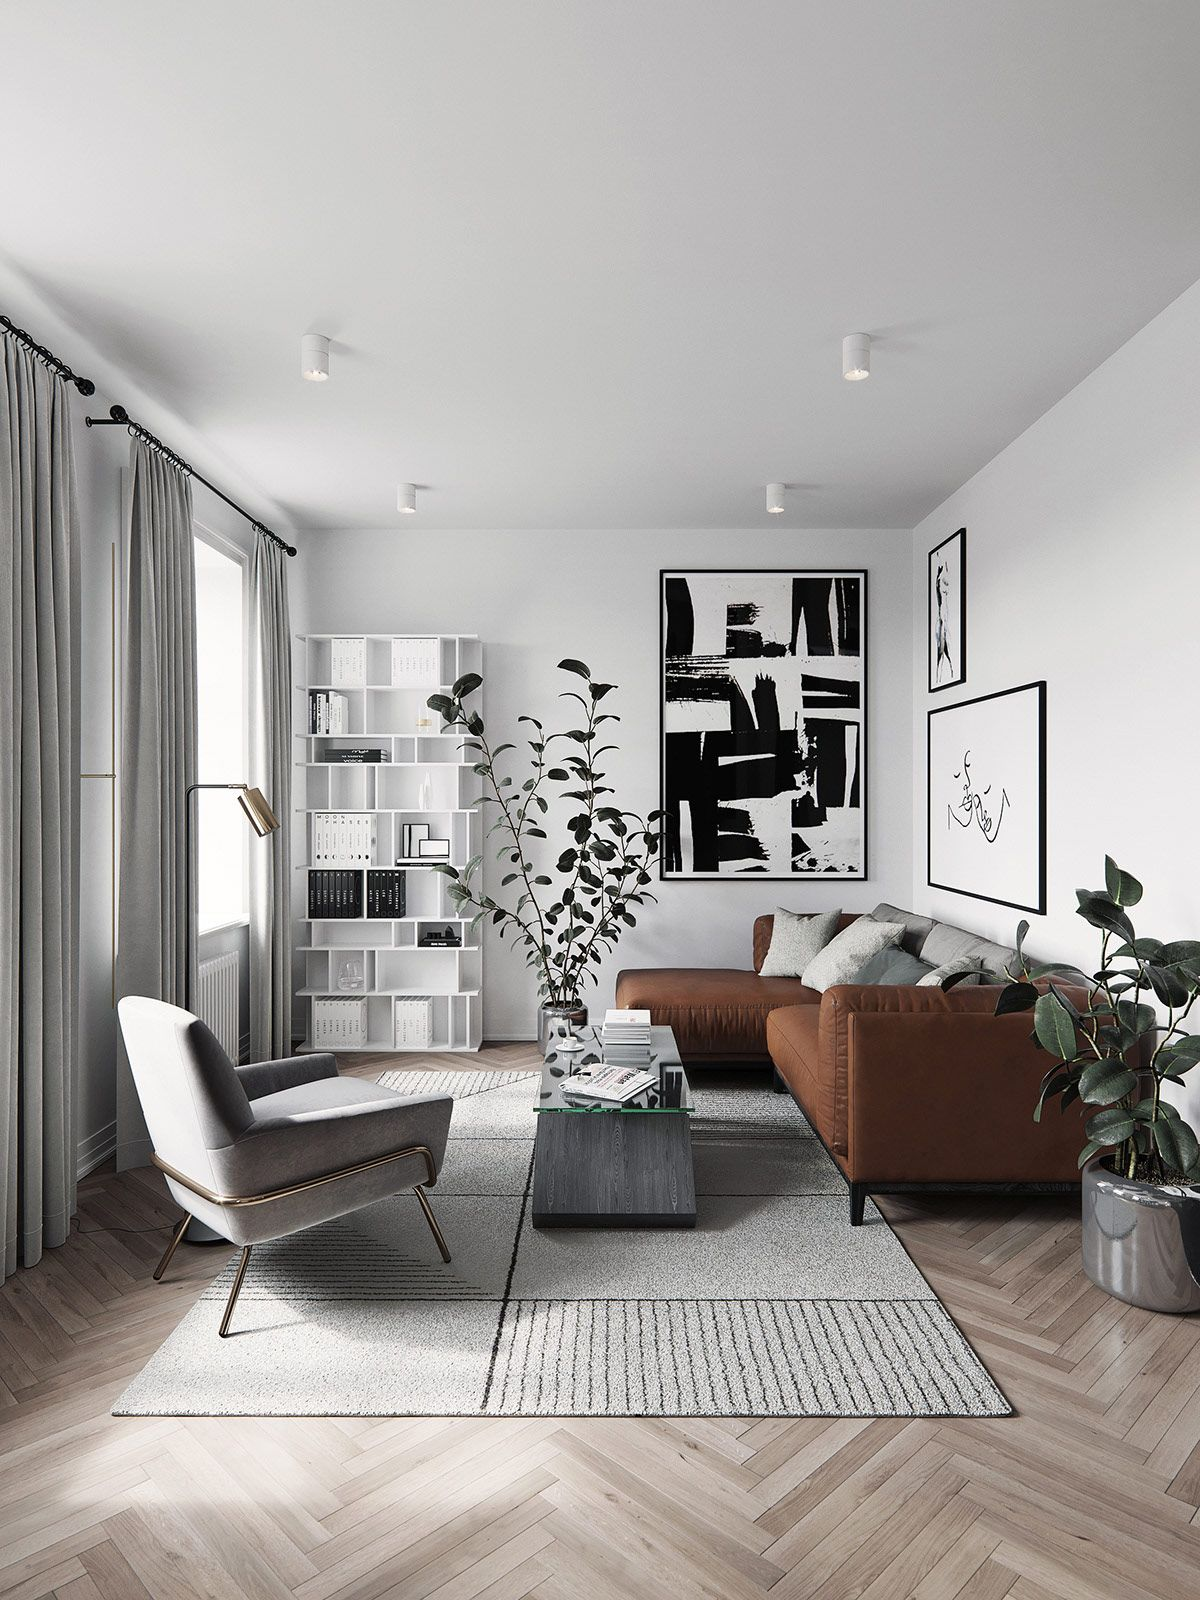 3 Homes Inspired By Different Takes On Nordic Interior Design Themes Modern Apartment Decor Interior Design Themes Scandinavian Interior Design